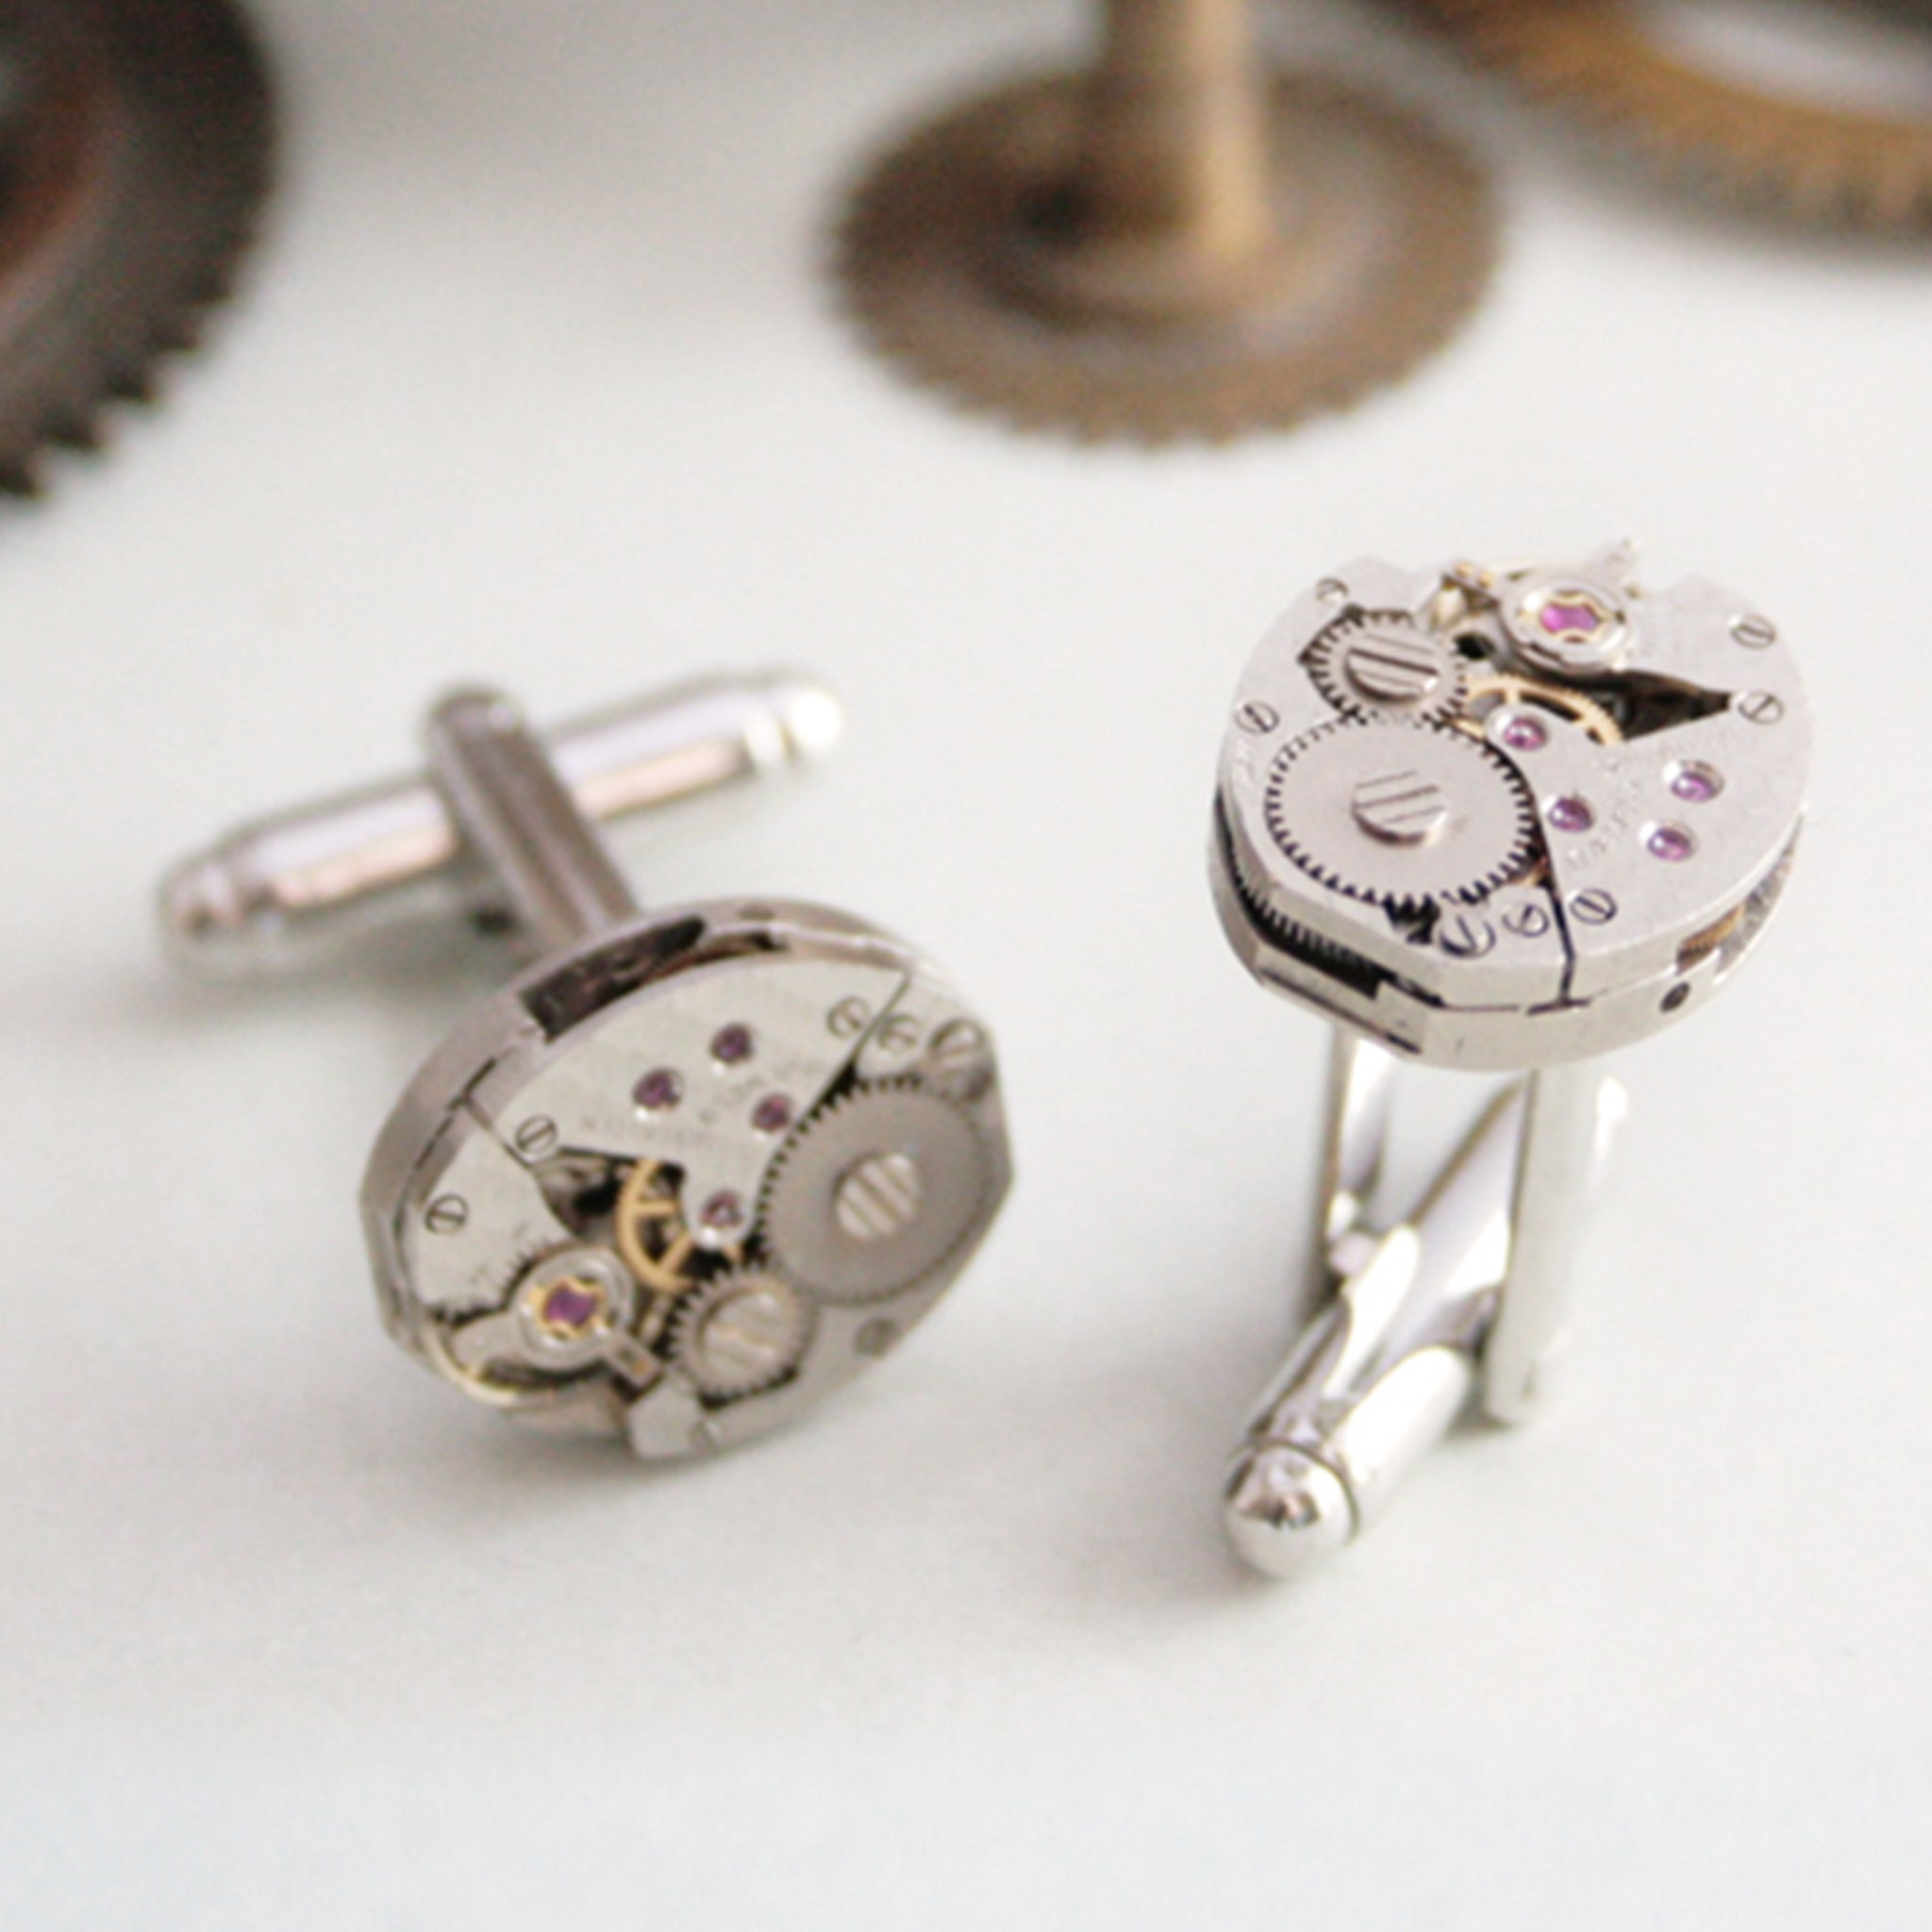 Fish scale pattern watch movements as cool womens cufflinks